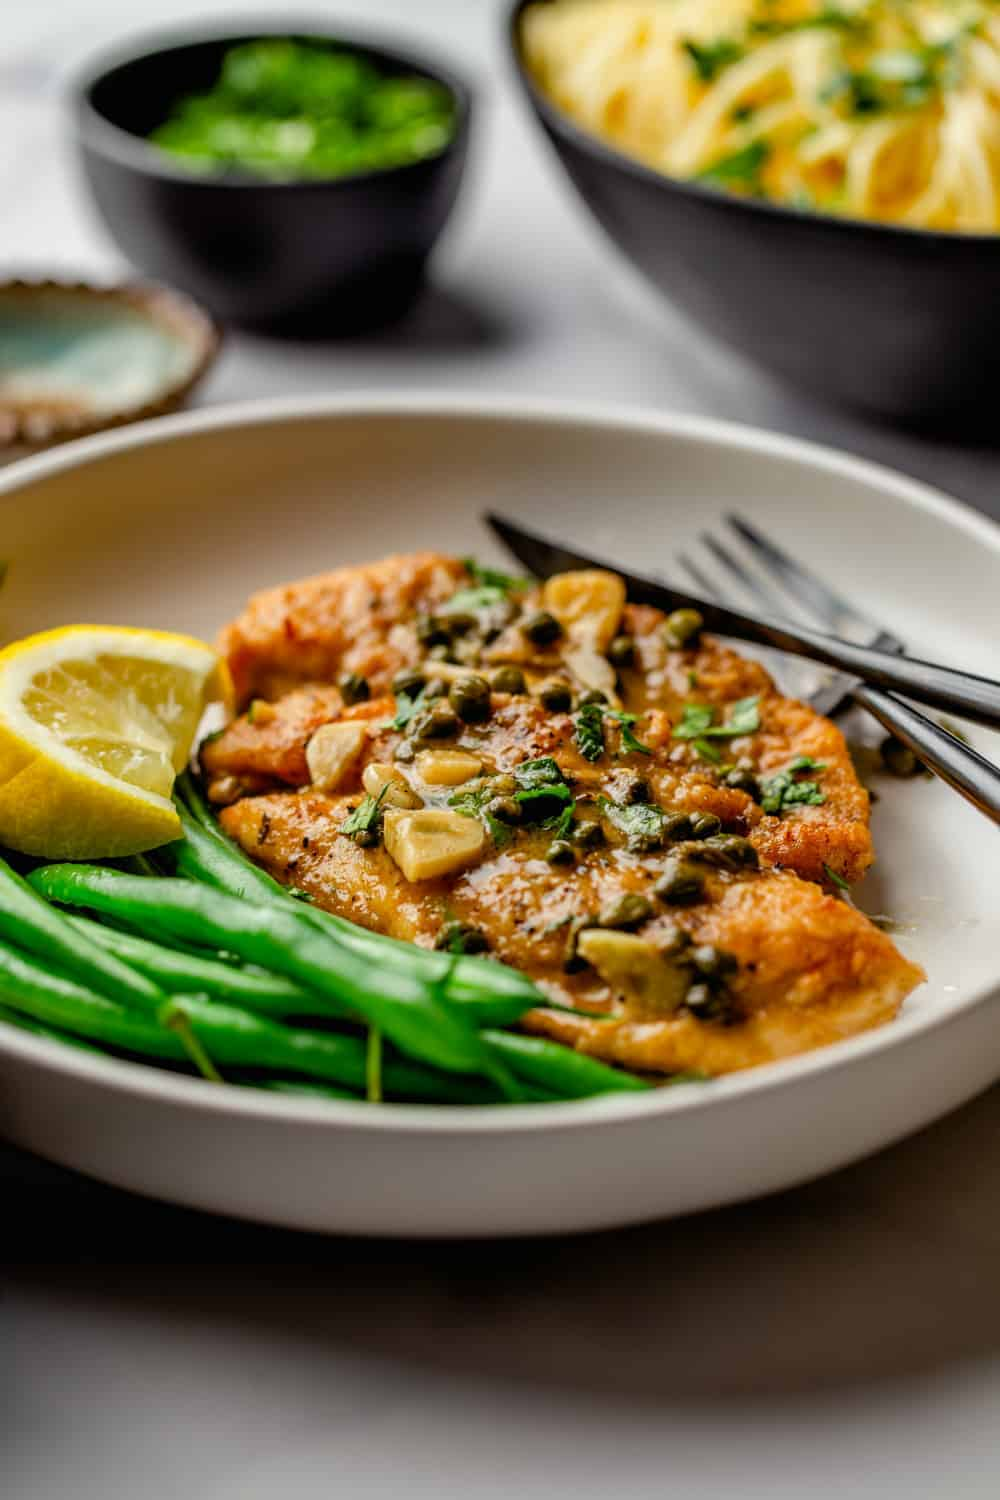 Lemon, garlic, capers and white wine make a delicious sauce for Chicken Piccata